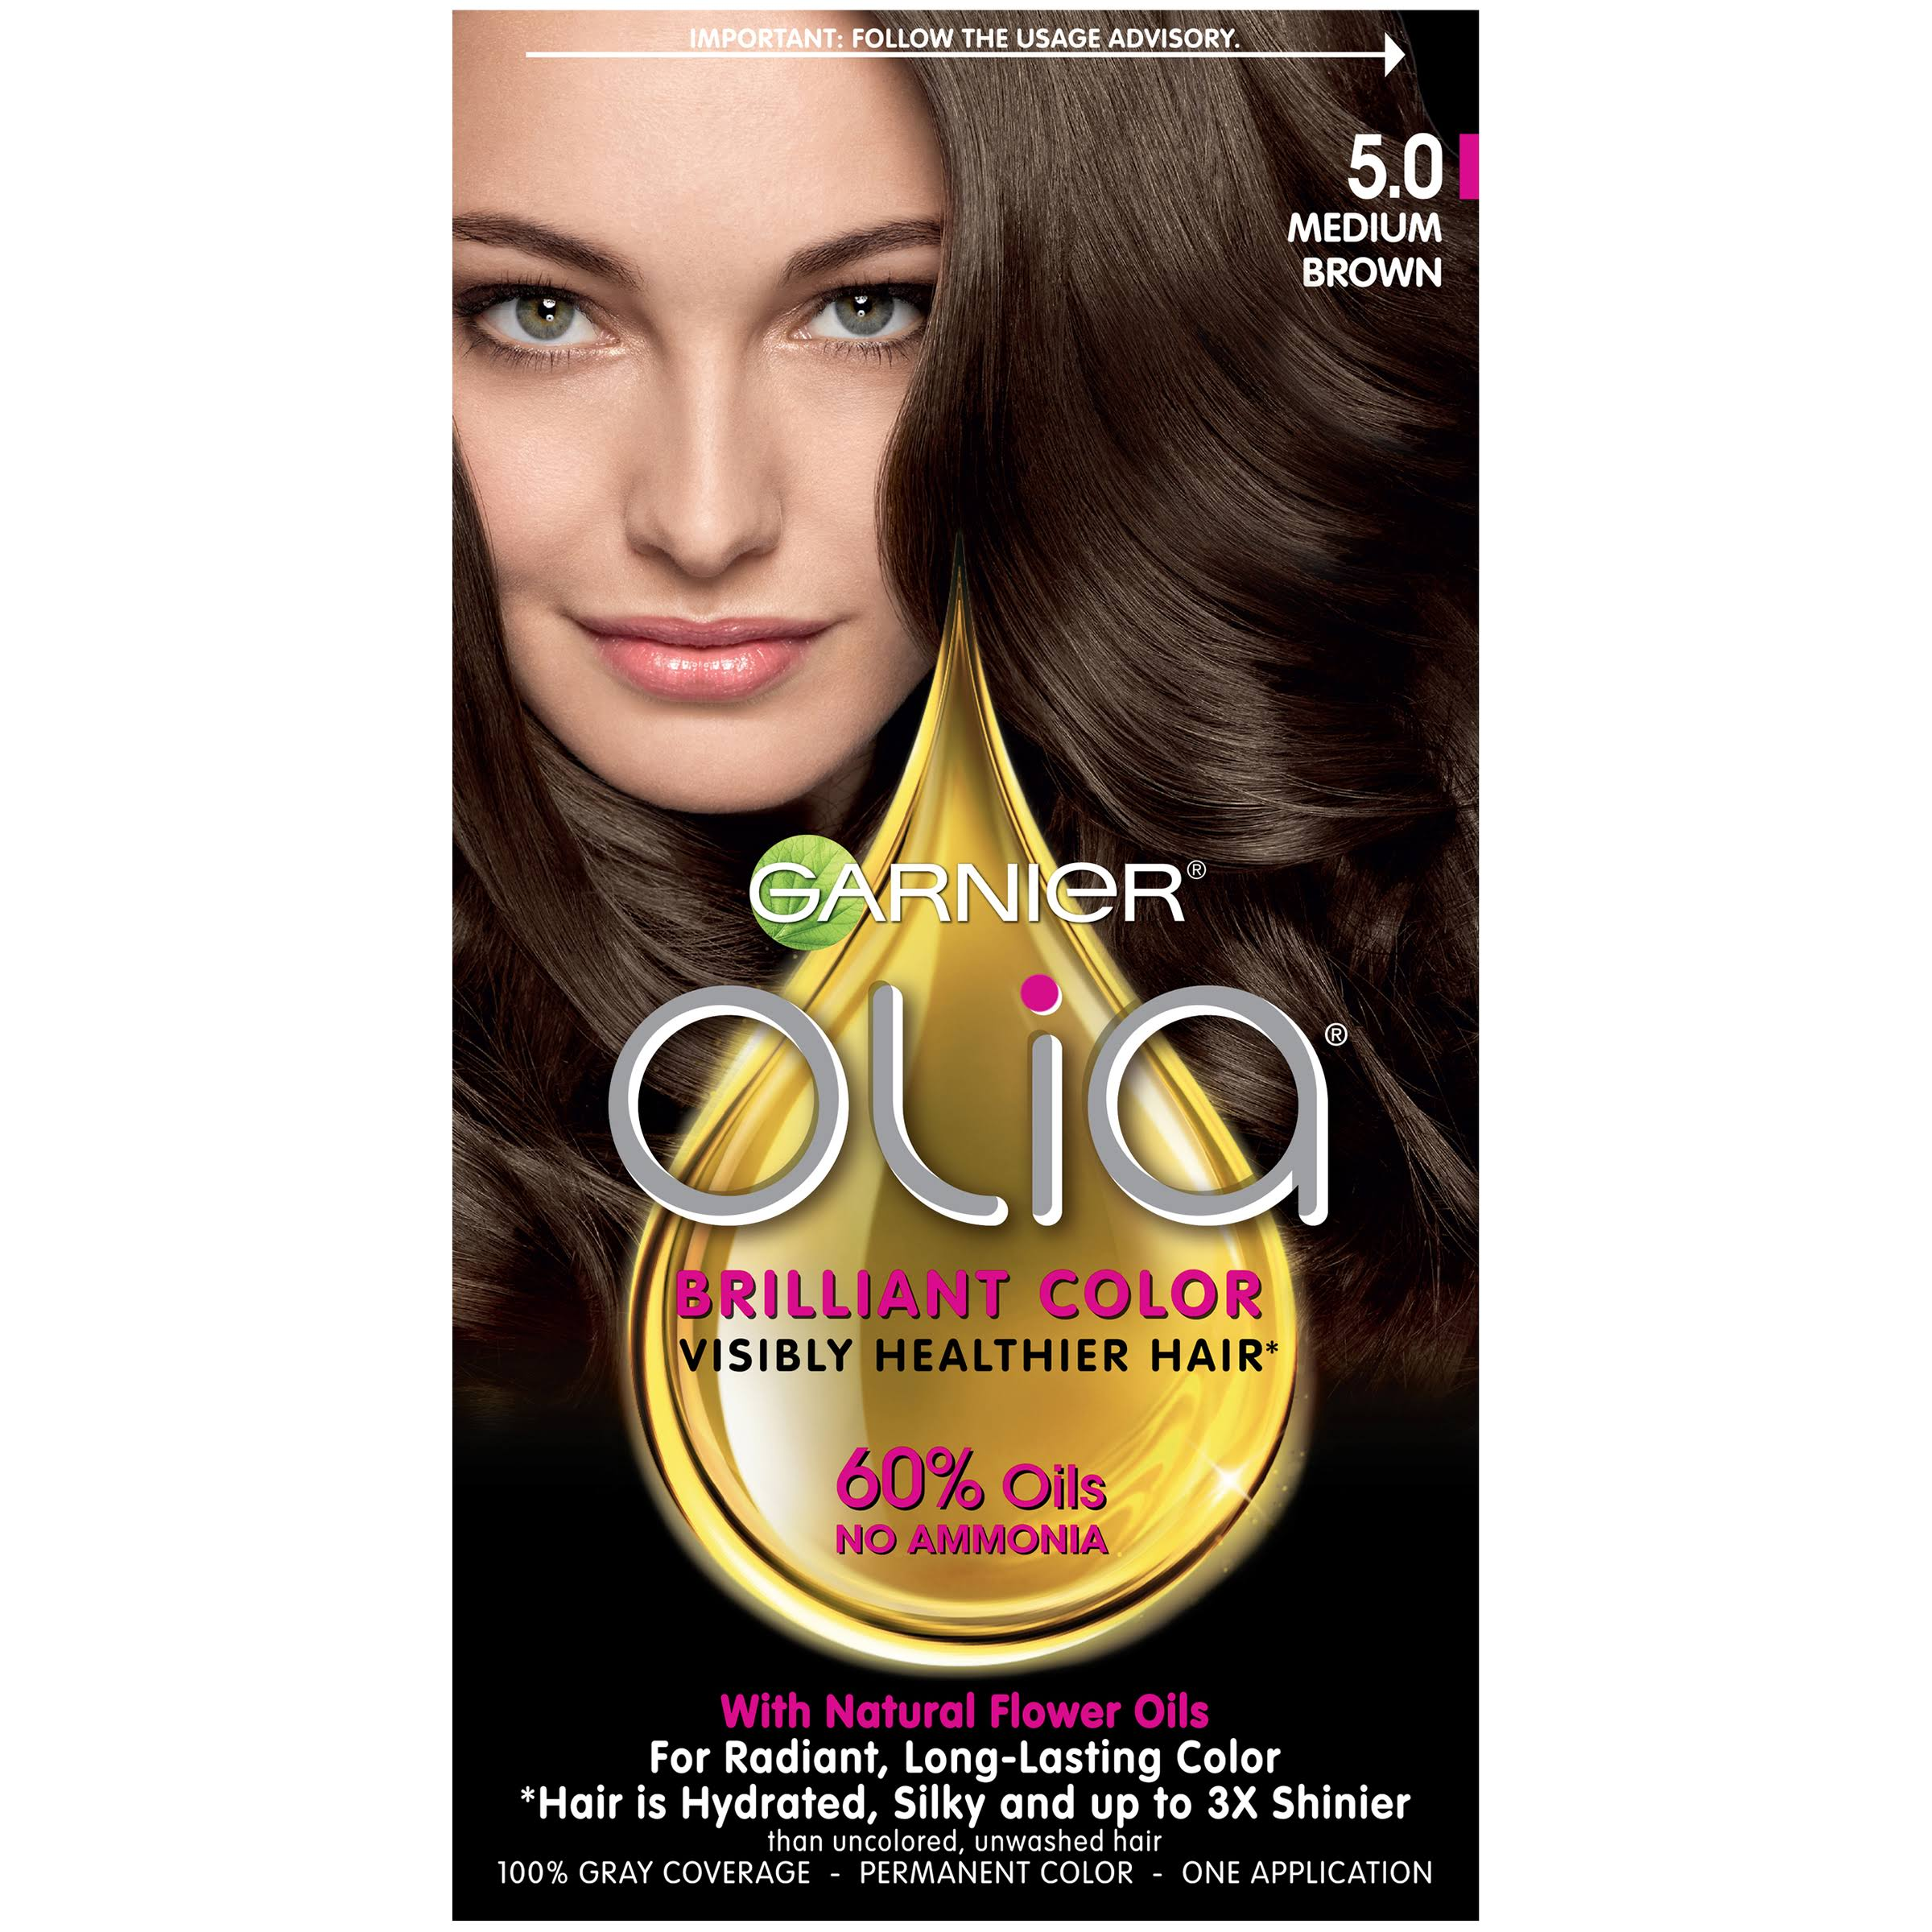 Garnier Olia Oil Powered Permanent Color - 5.0 Medium Brow